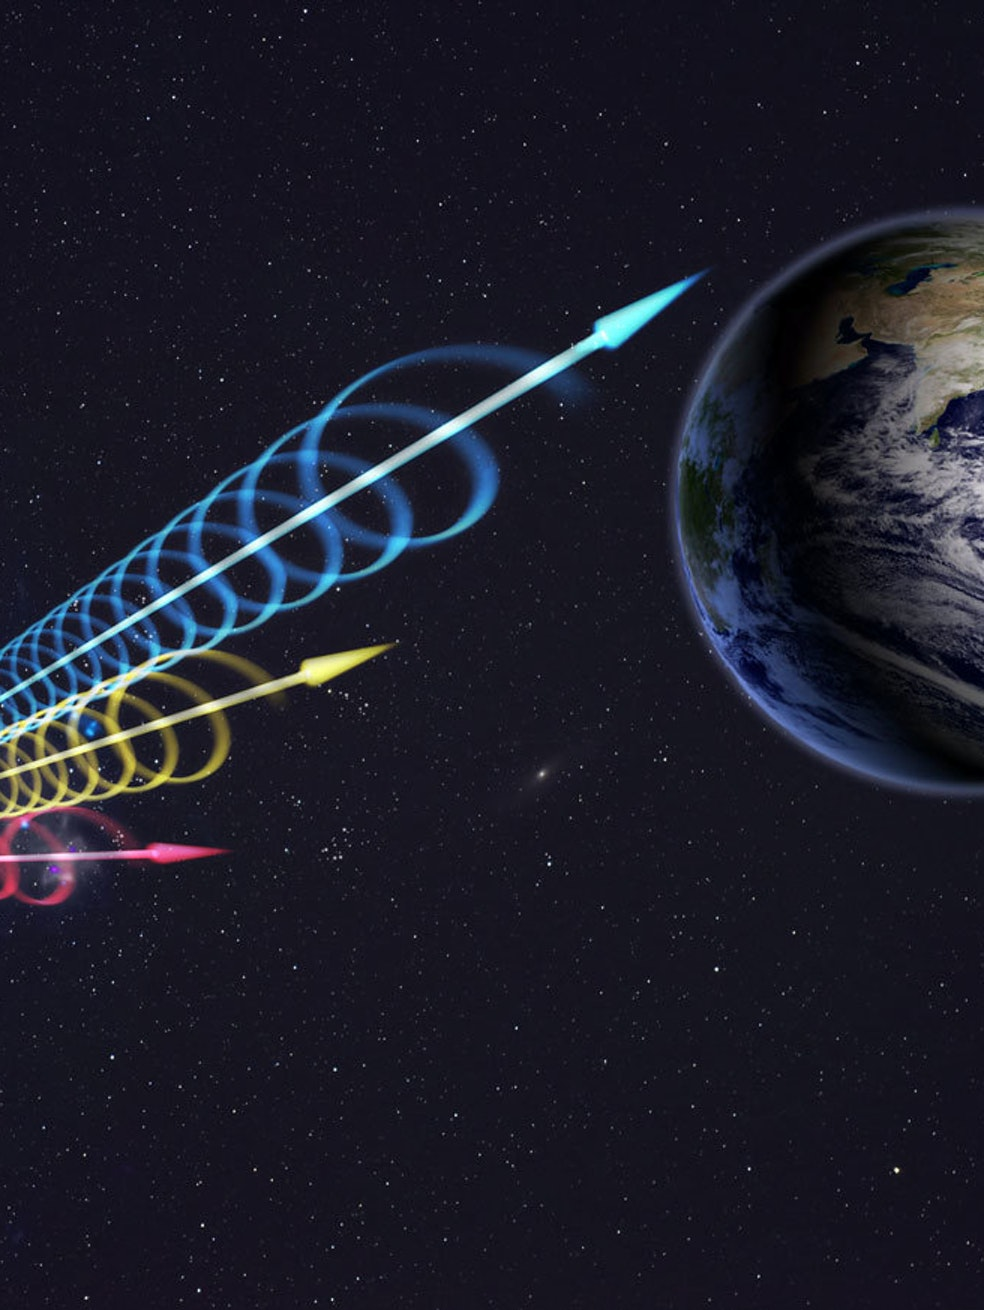 Artist impression of a Fast Radio Burst (FRB) reaching Earth. The colors represent the burst arriving at different radio wavelengths, with long wavelengths (red) arriving several seconds after short wavelengths (blue). This delay is called dispersion and occurs when radio waves travel through cosmic plasma.